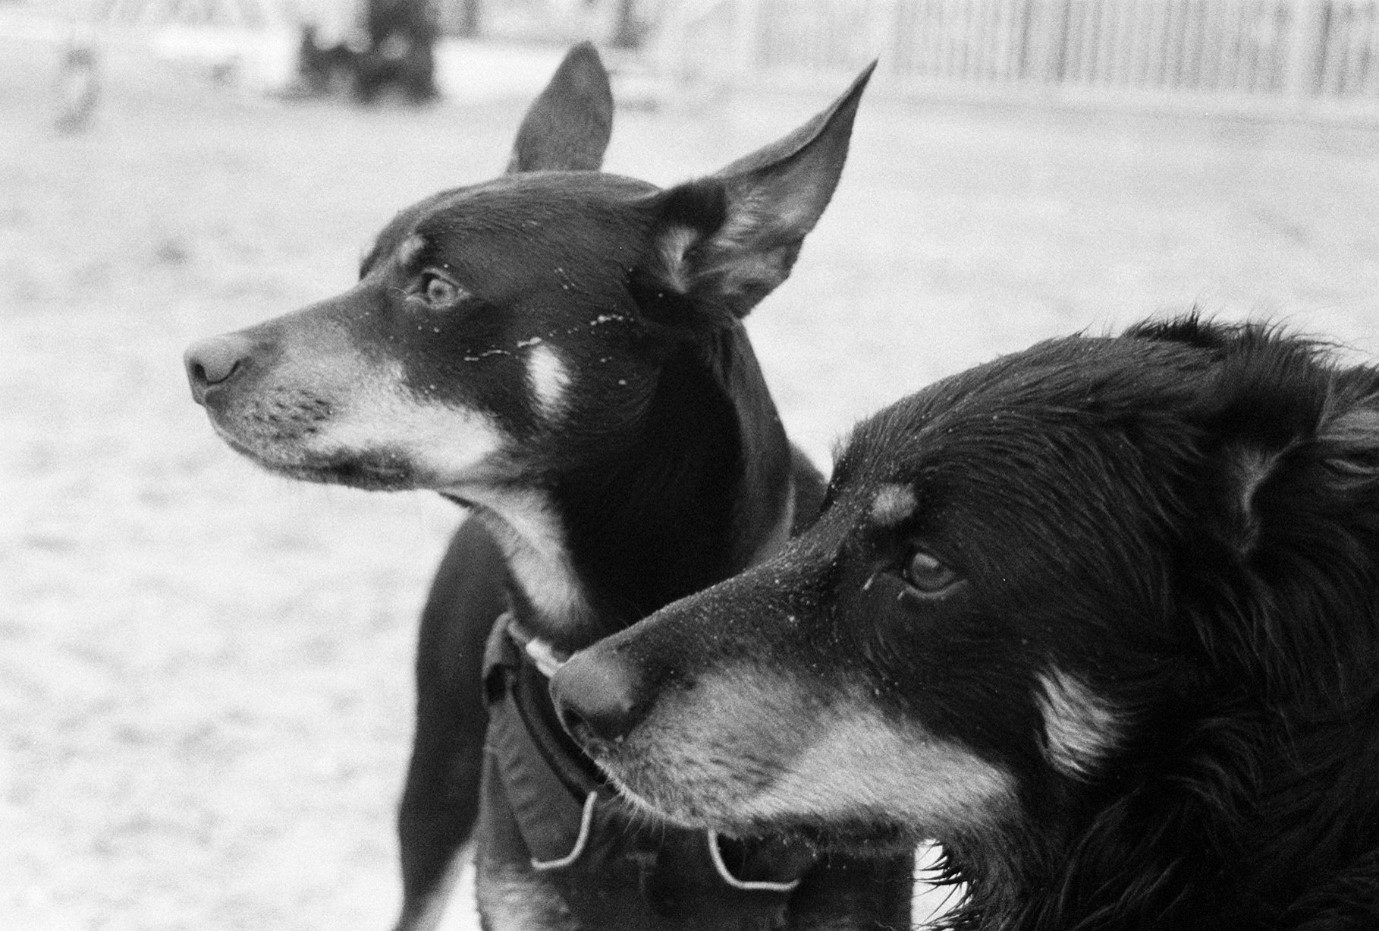 My puppies Brenin and Rwc (Front to back) on the beach, clearly interested in something in the distance. Shot on HP5.